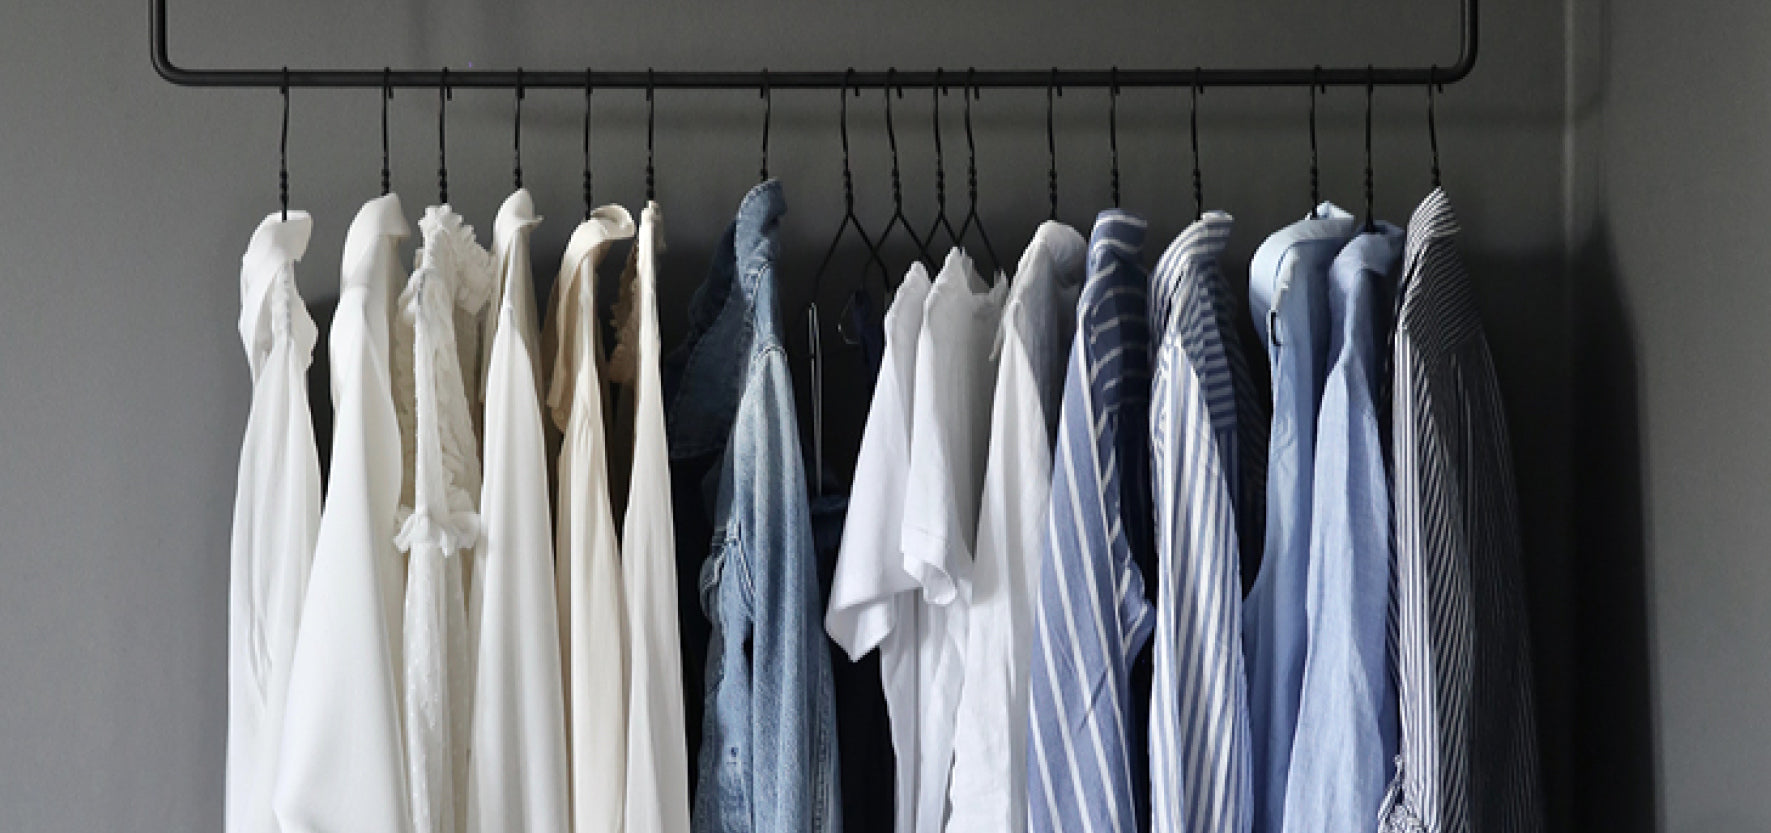 neutral clothes as part of a capsule wardrobe